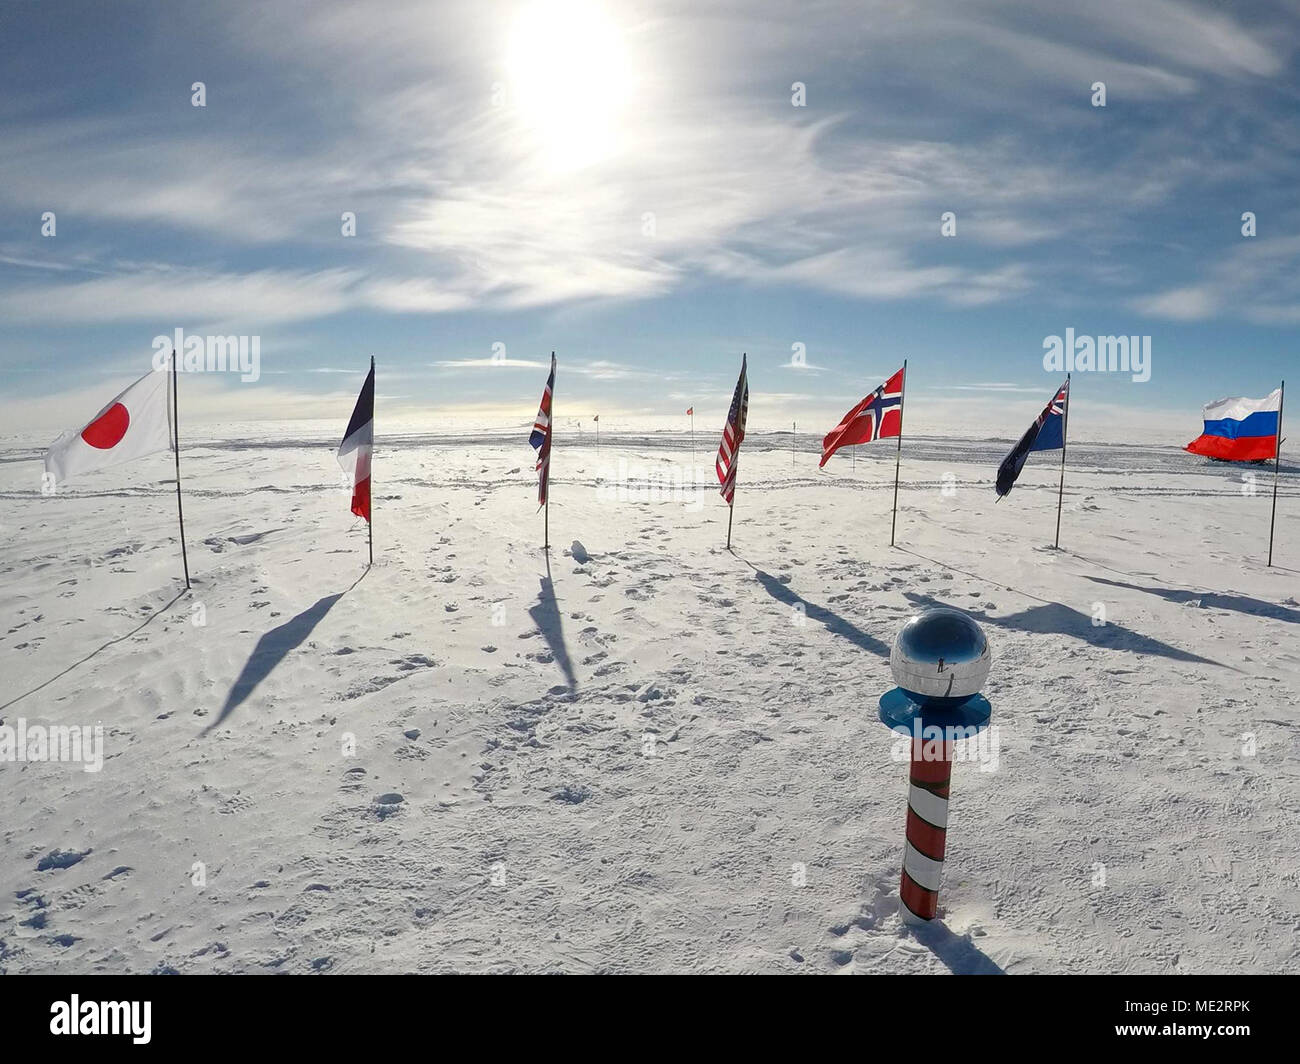 Magnetic South Pole Stockfotos & Magnetic South Pole Bilder - Alamy